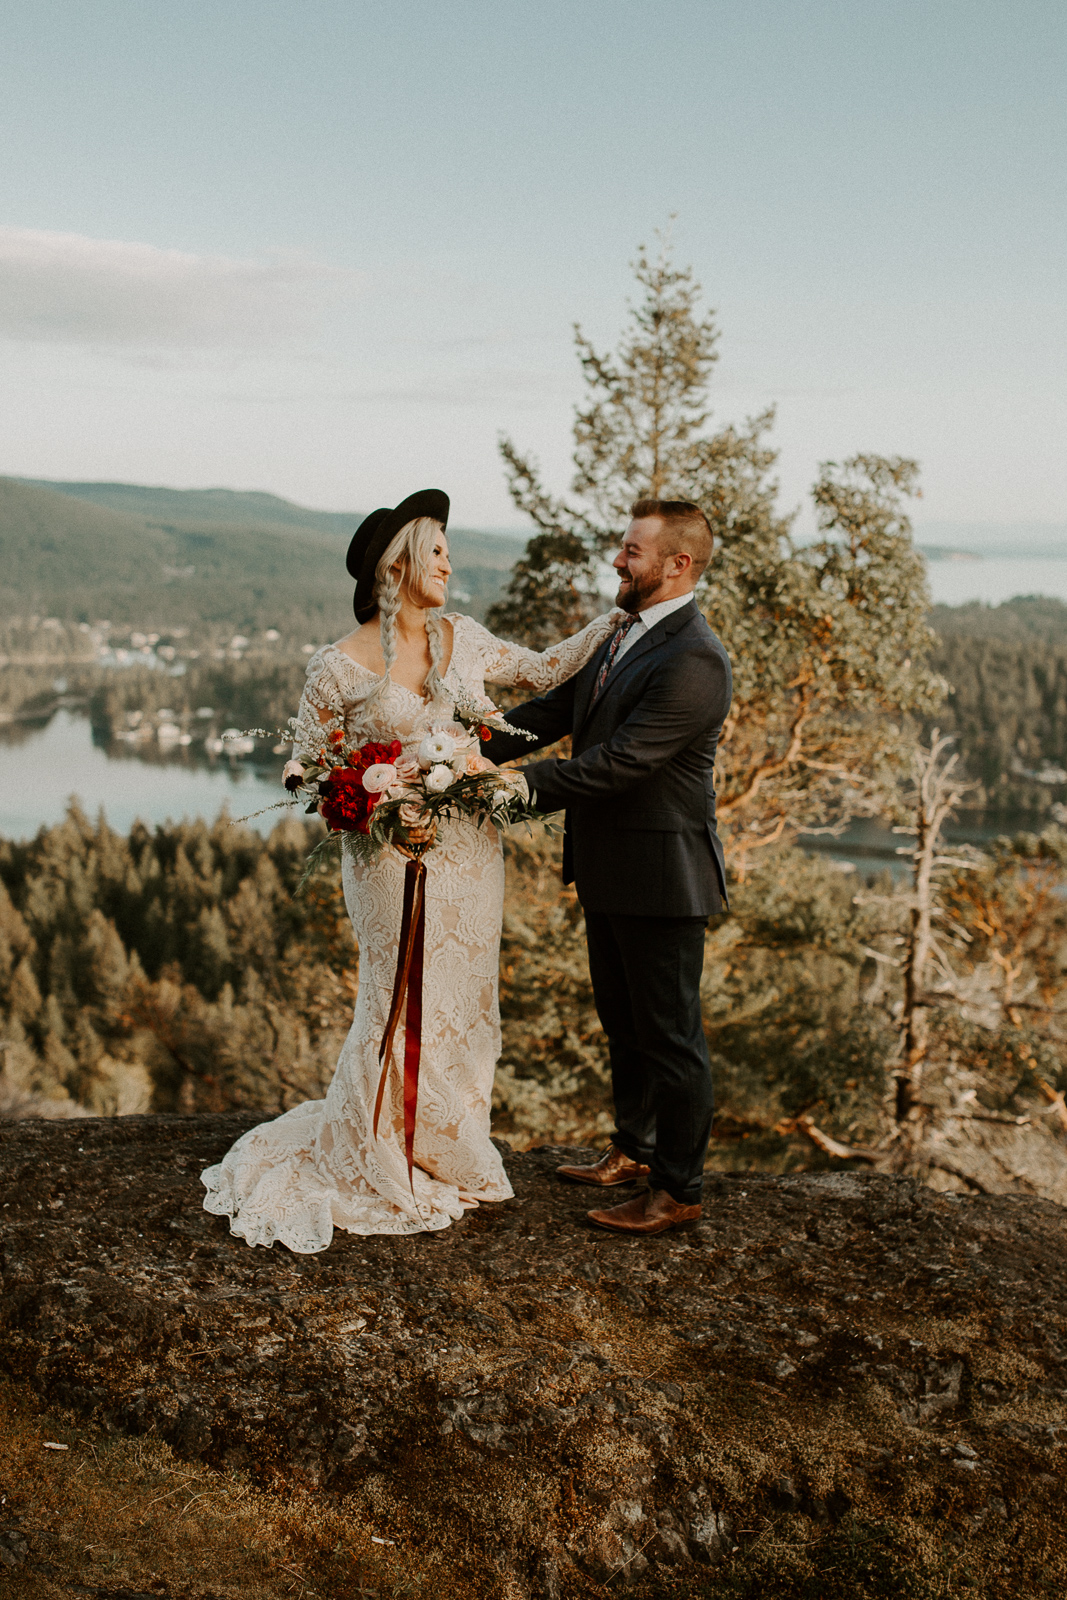 Luke Lambertson Photo_BritishColumbia_Canada_AdventurousCouple_Elopement_IMG-7904.jpg